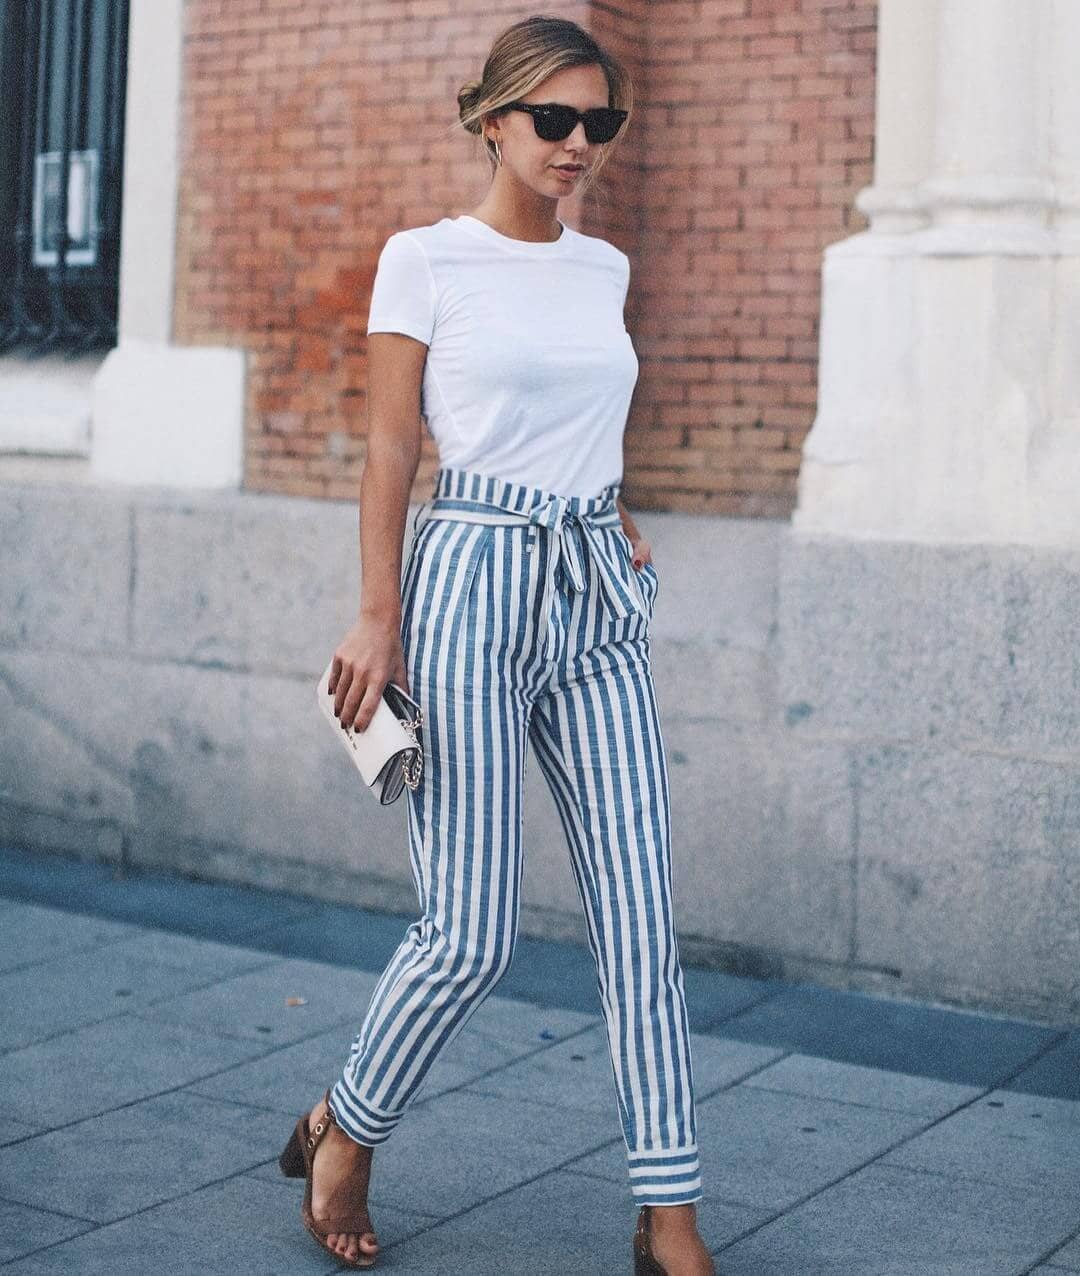 Super smooth sailing in these striped pants